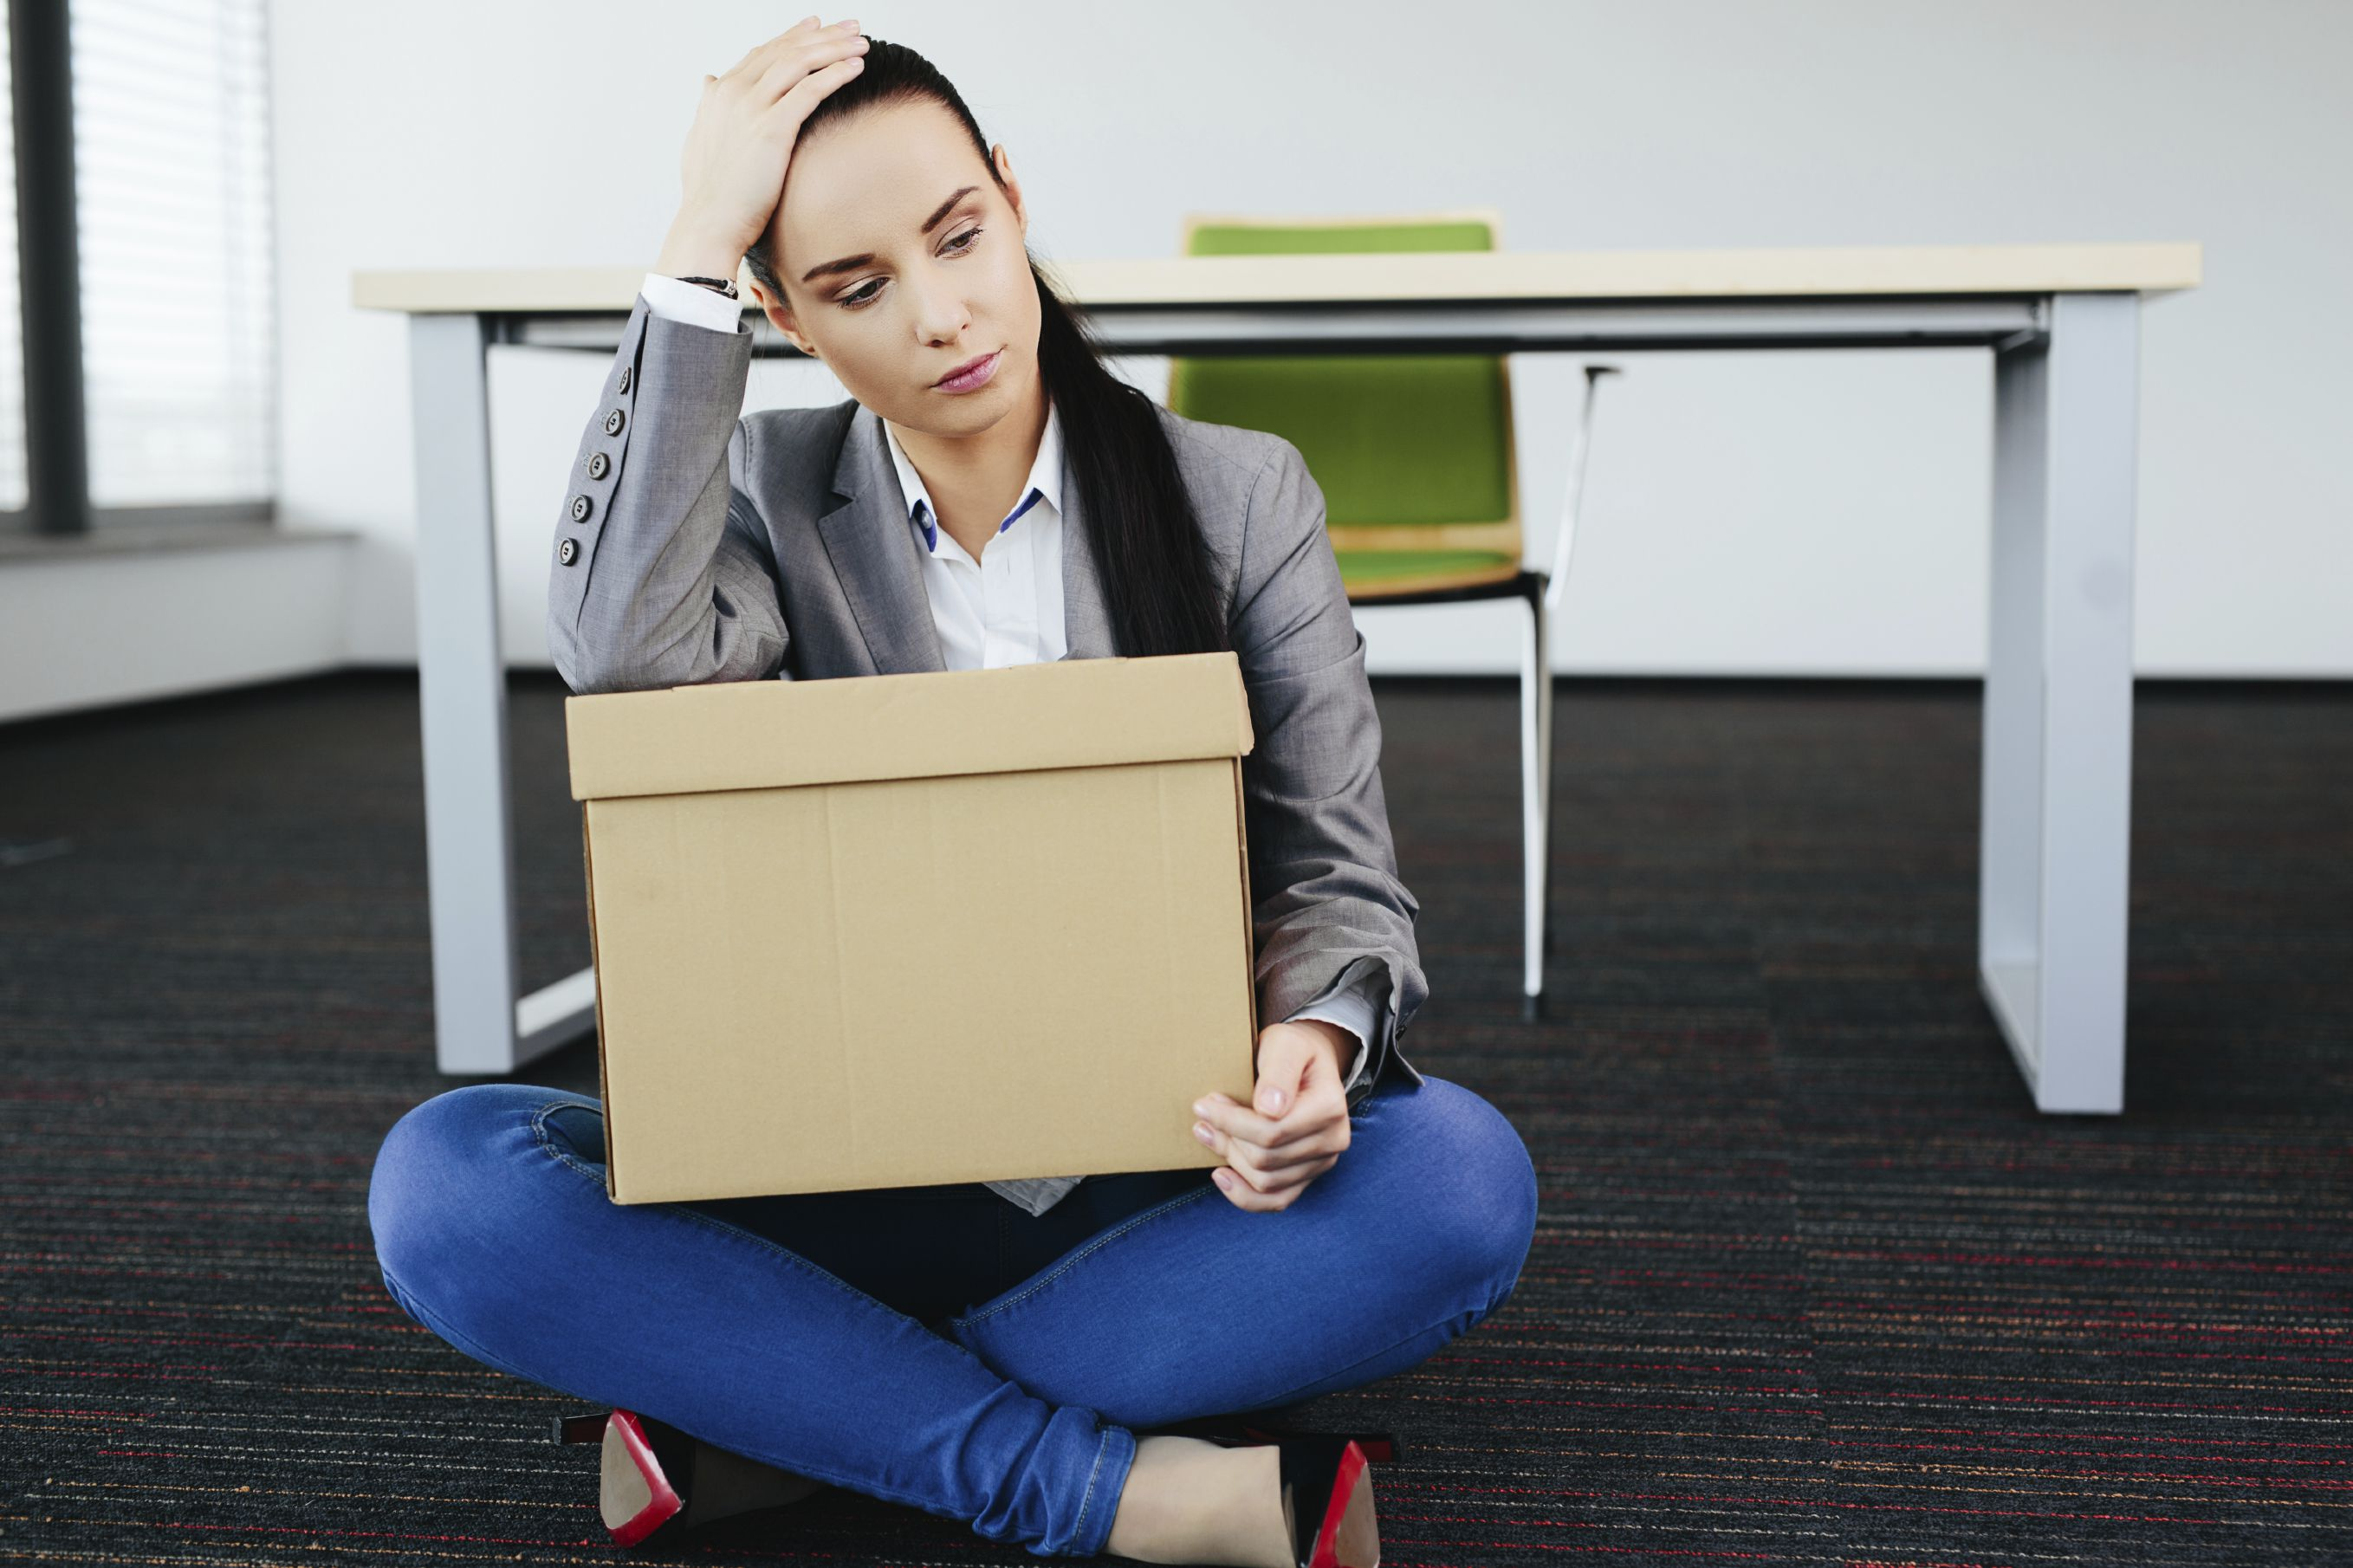 Can You Get Fired for Job Searching? - thebalancecareers.com